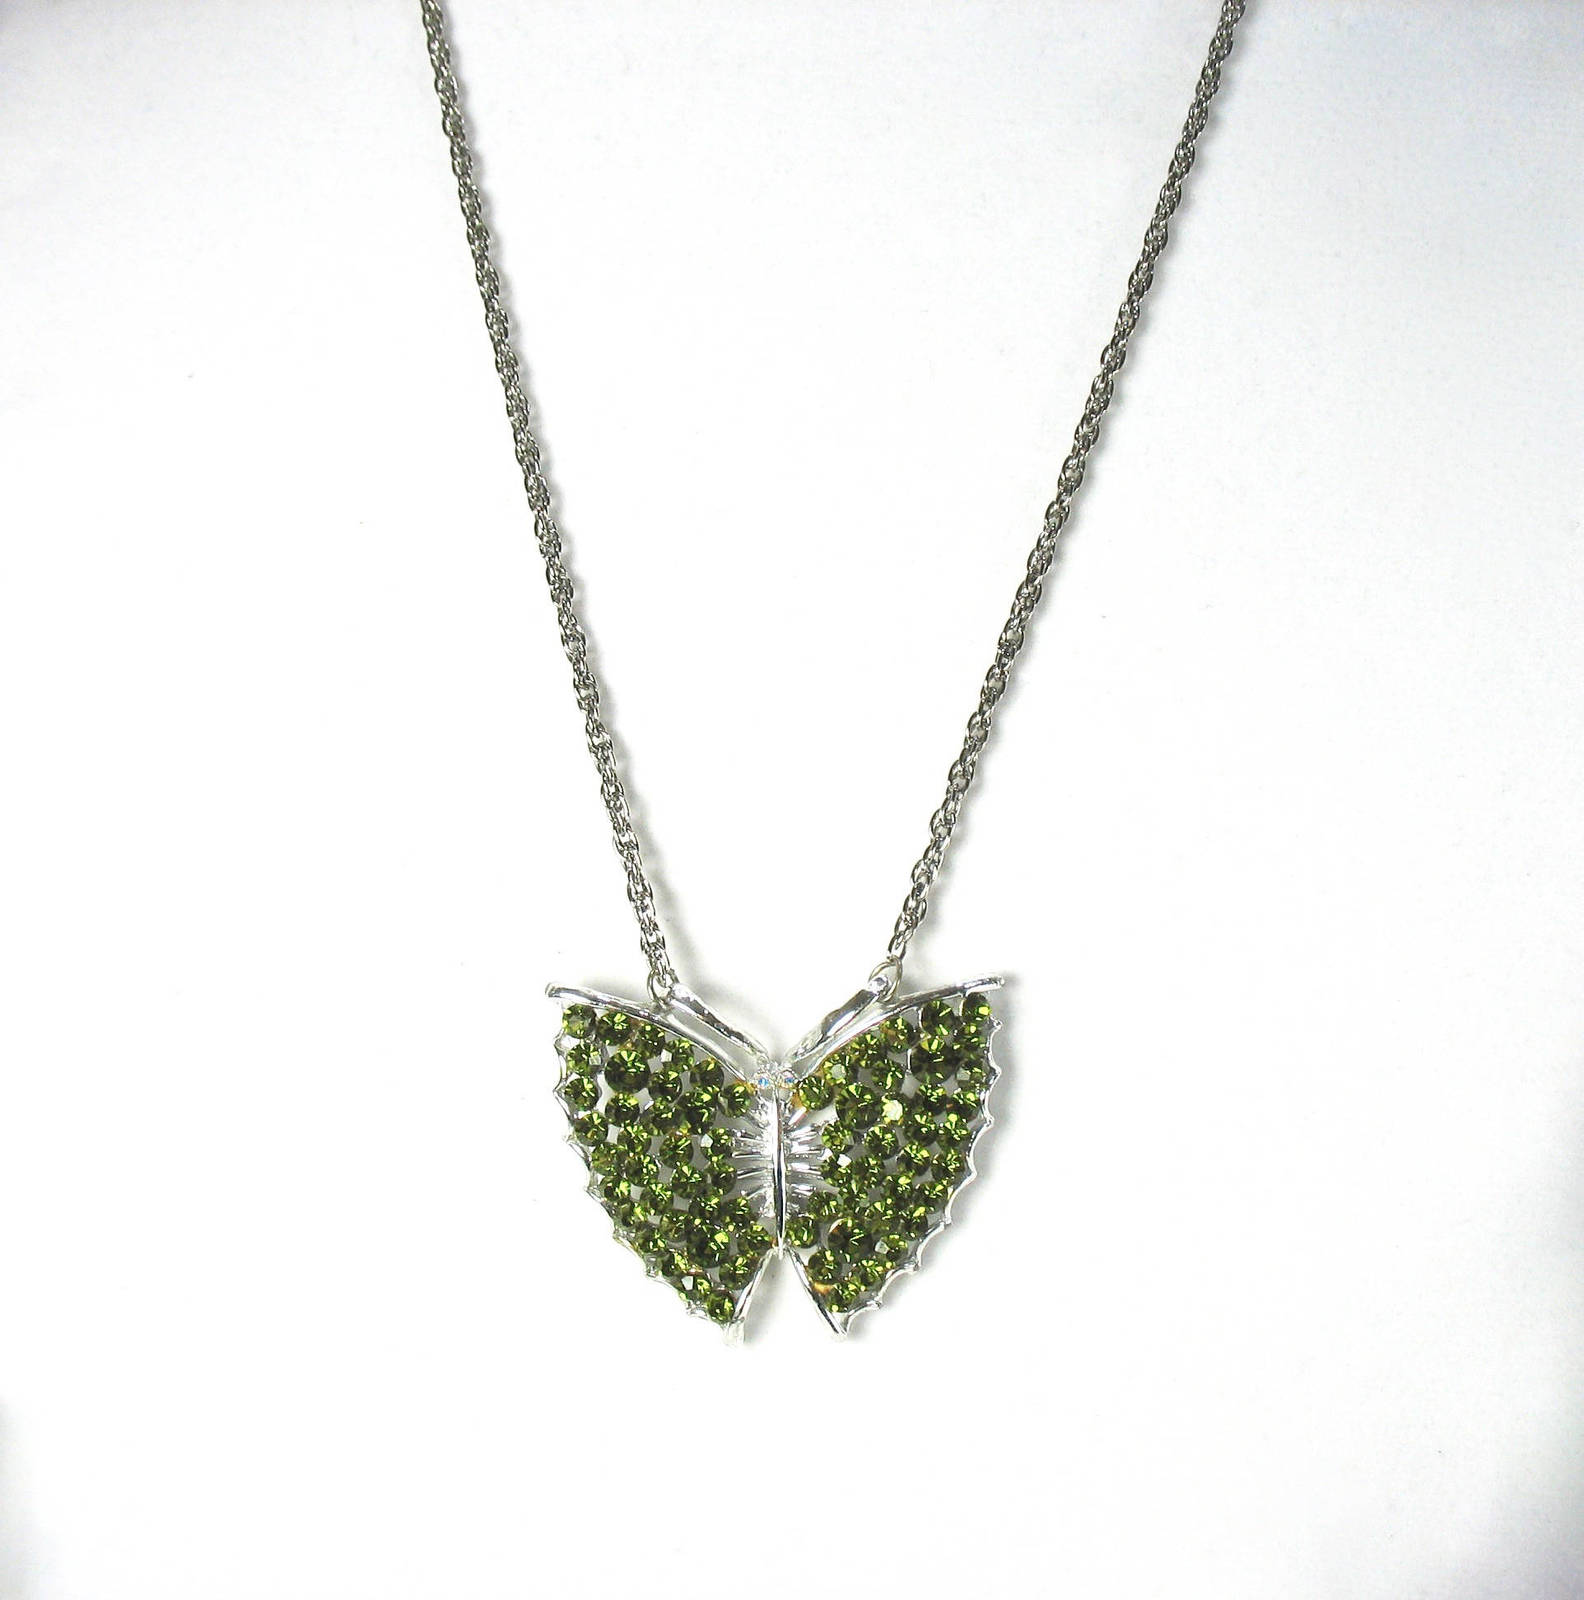 Butterfly Pendant Necklace, Green Rhinestones, Large, Long Chain, Silver, 1970's